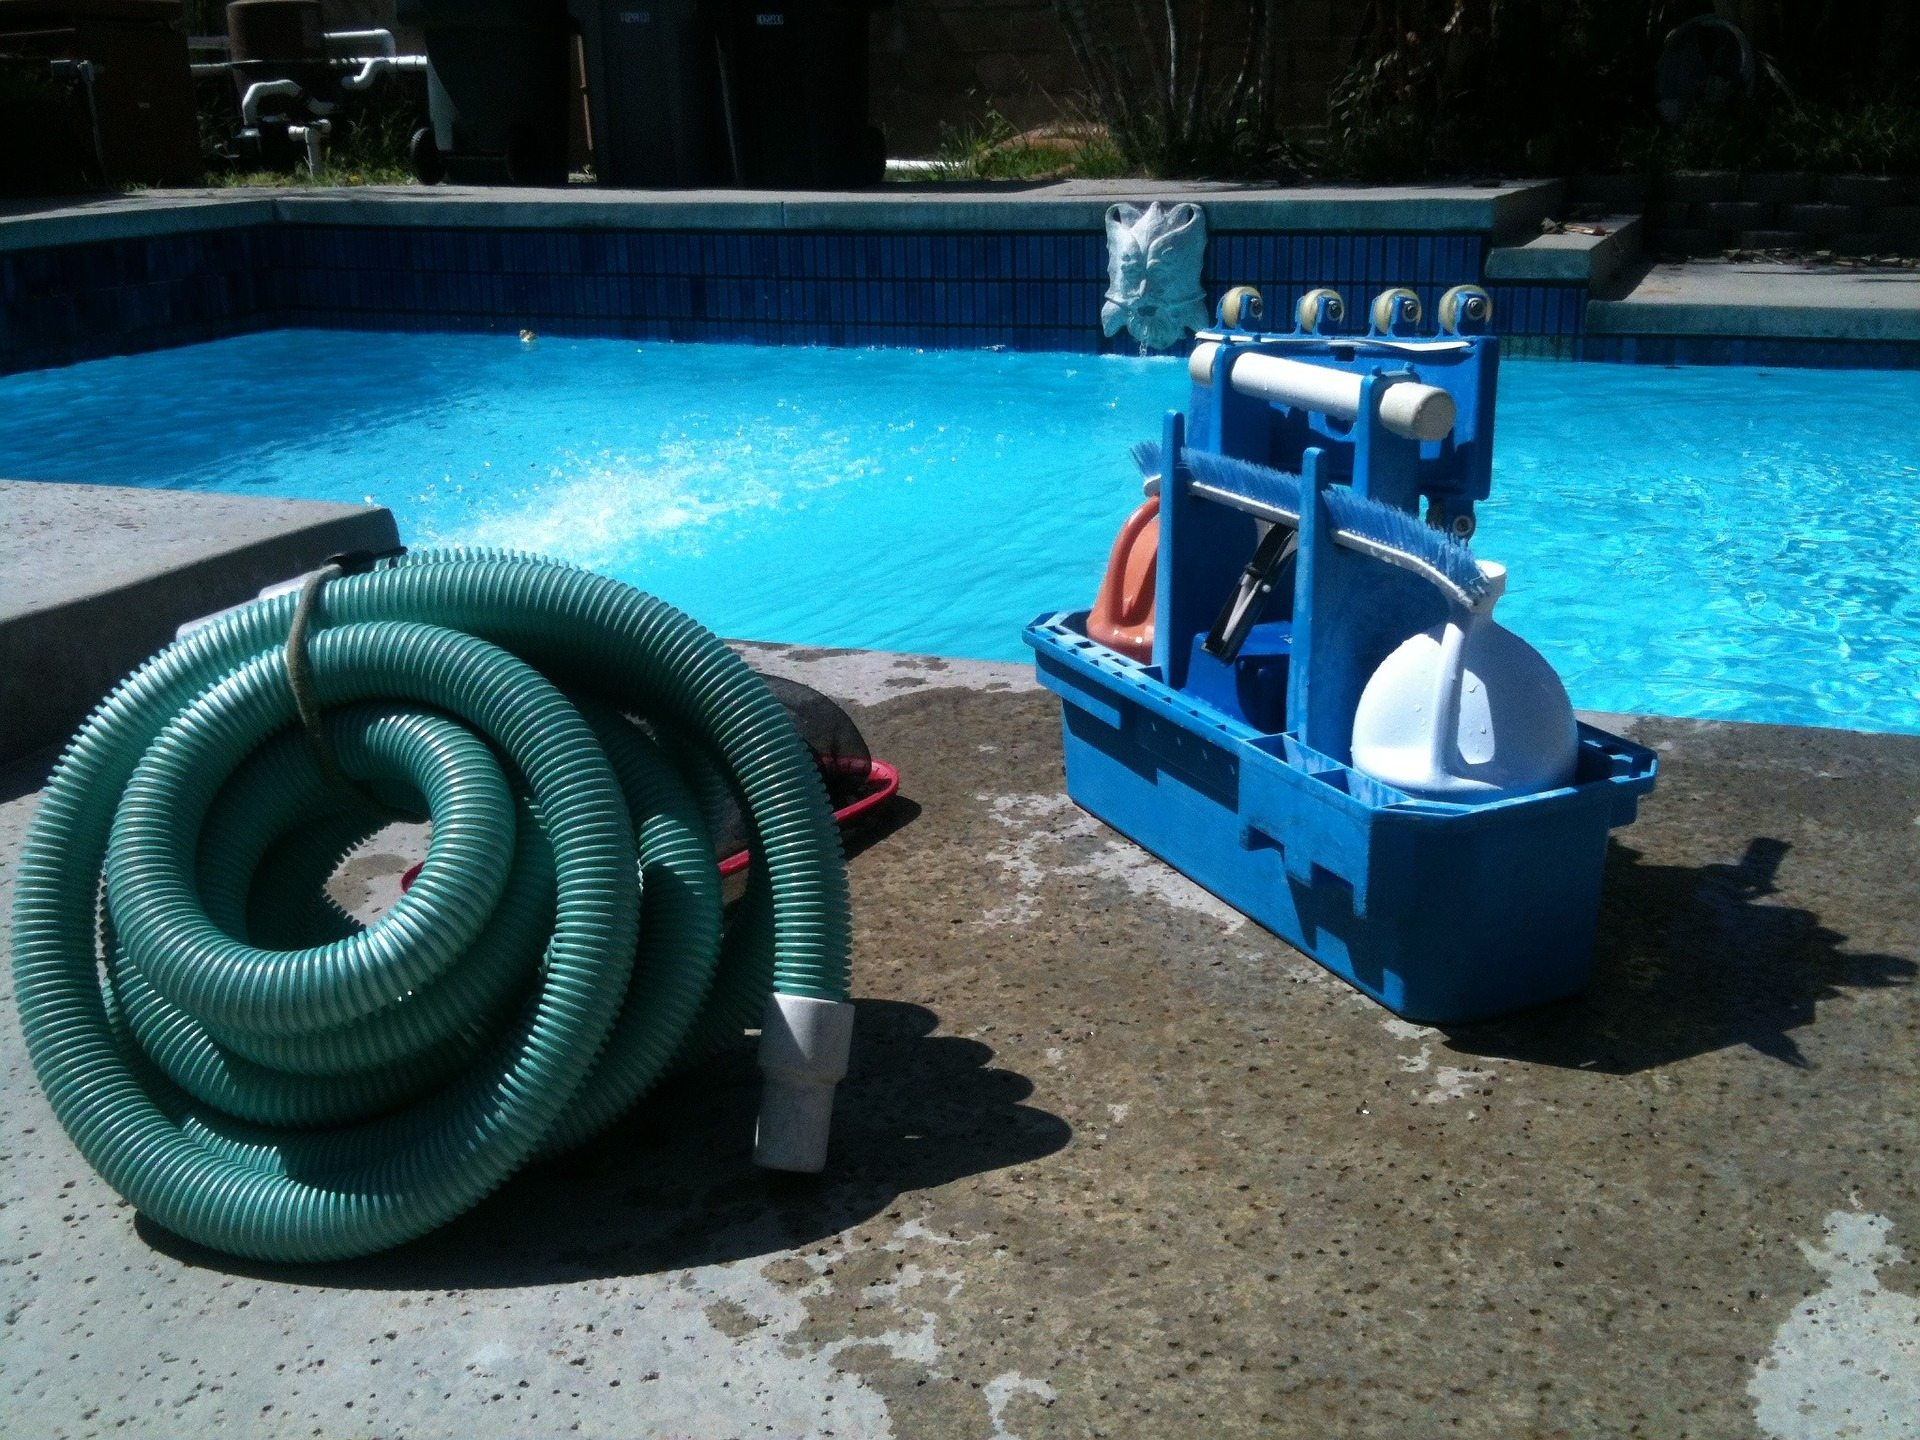 How-to-close-an-inground-pool-blog-hose-image